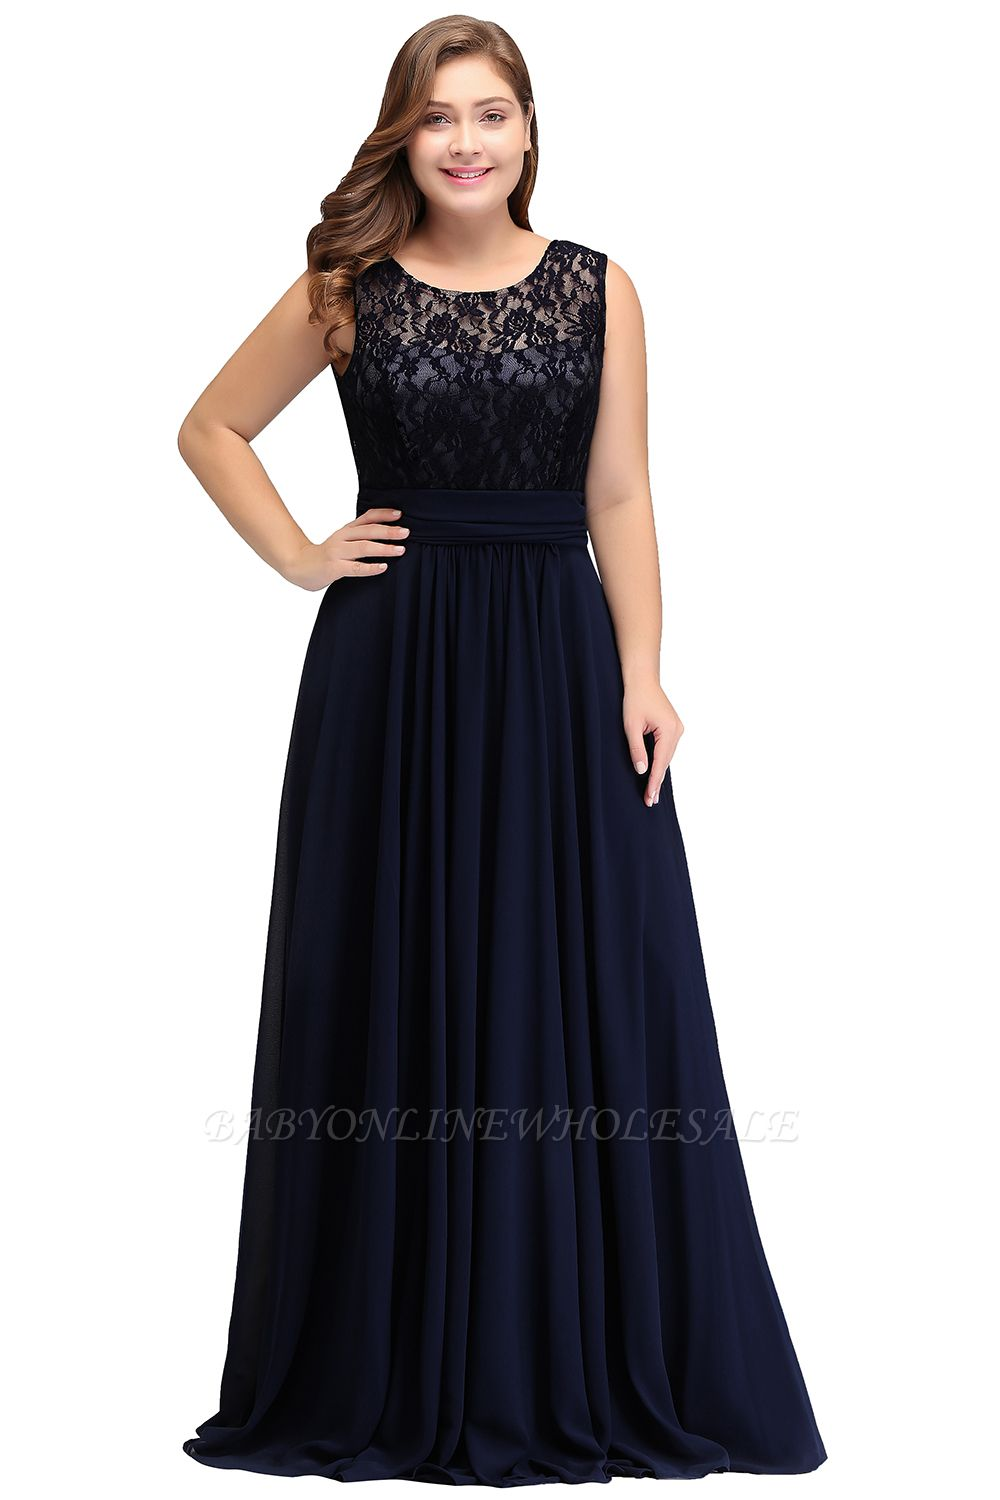 IVY | A-Line Crew Long Sleeveless Dark Navy Plus size bridesmaid Dresses with Lace